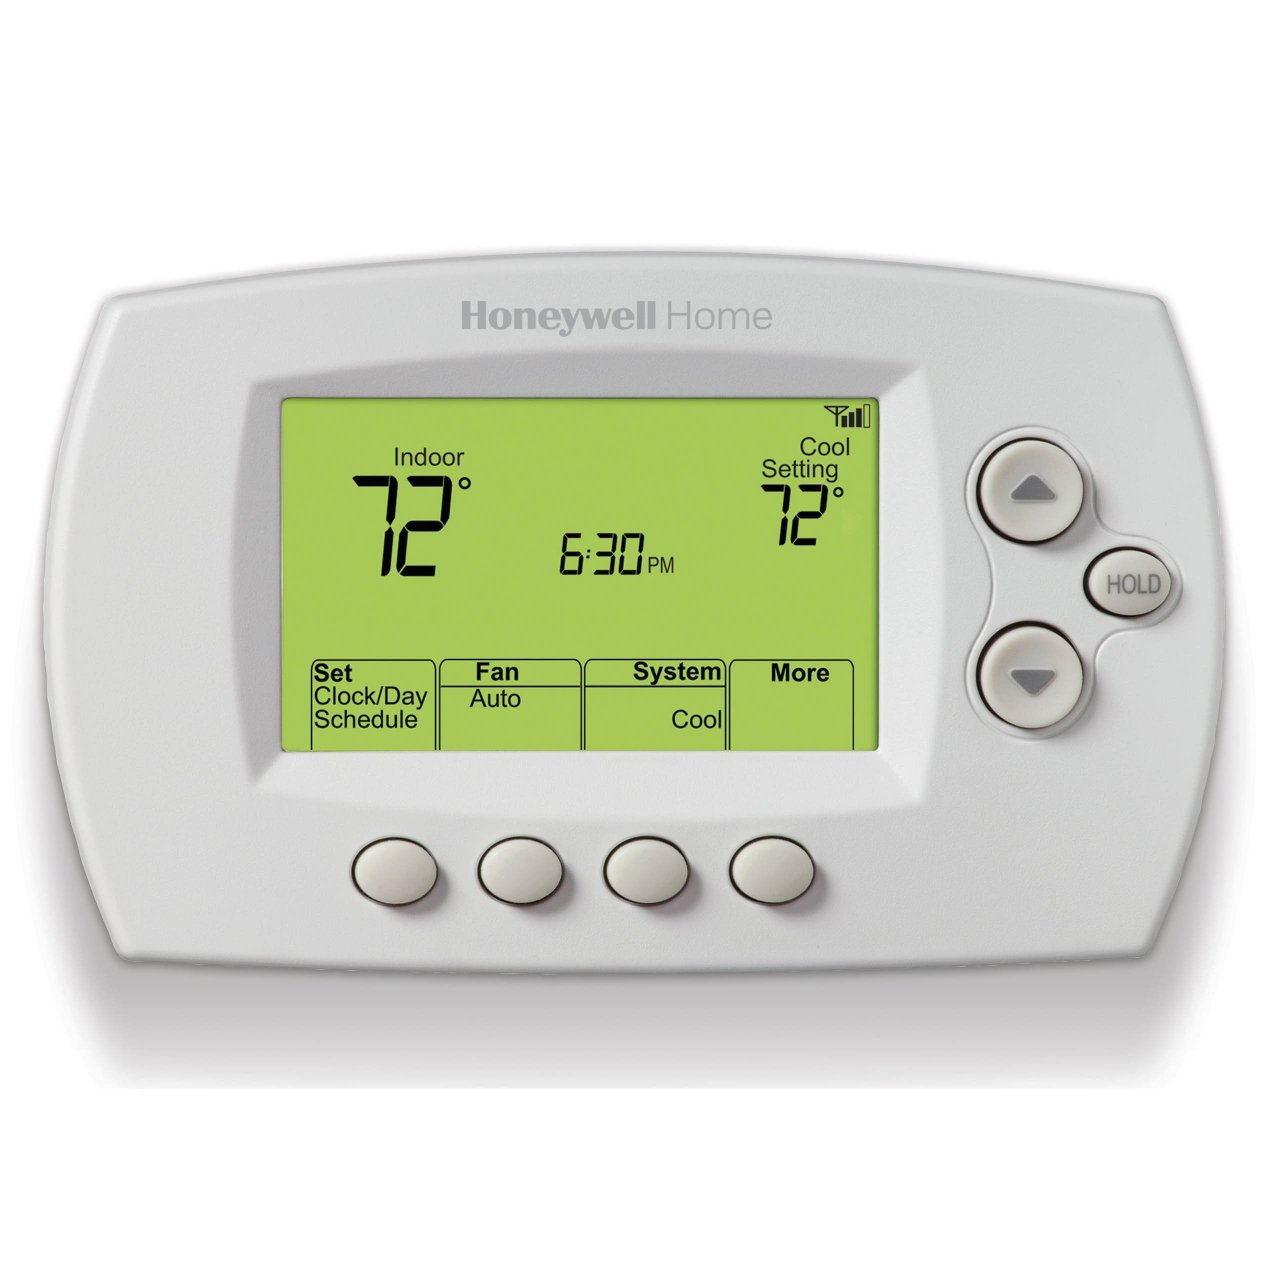 Honeywell Home 7-Day Programmable Thermostat with Wi-Fi Capability